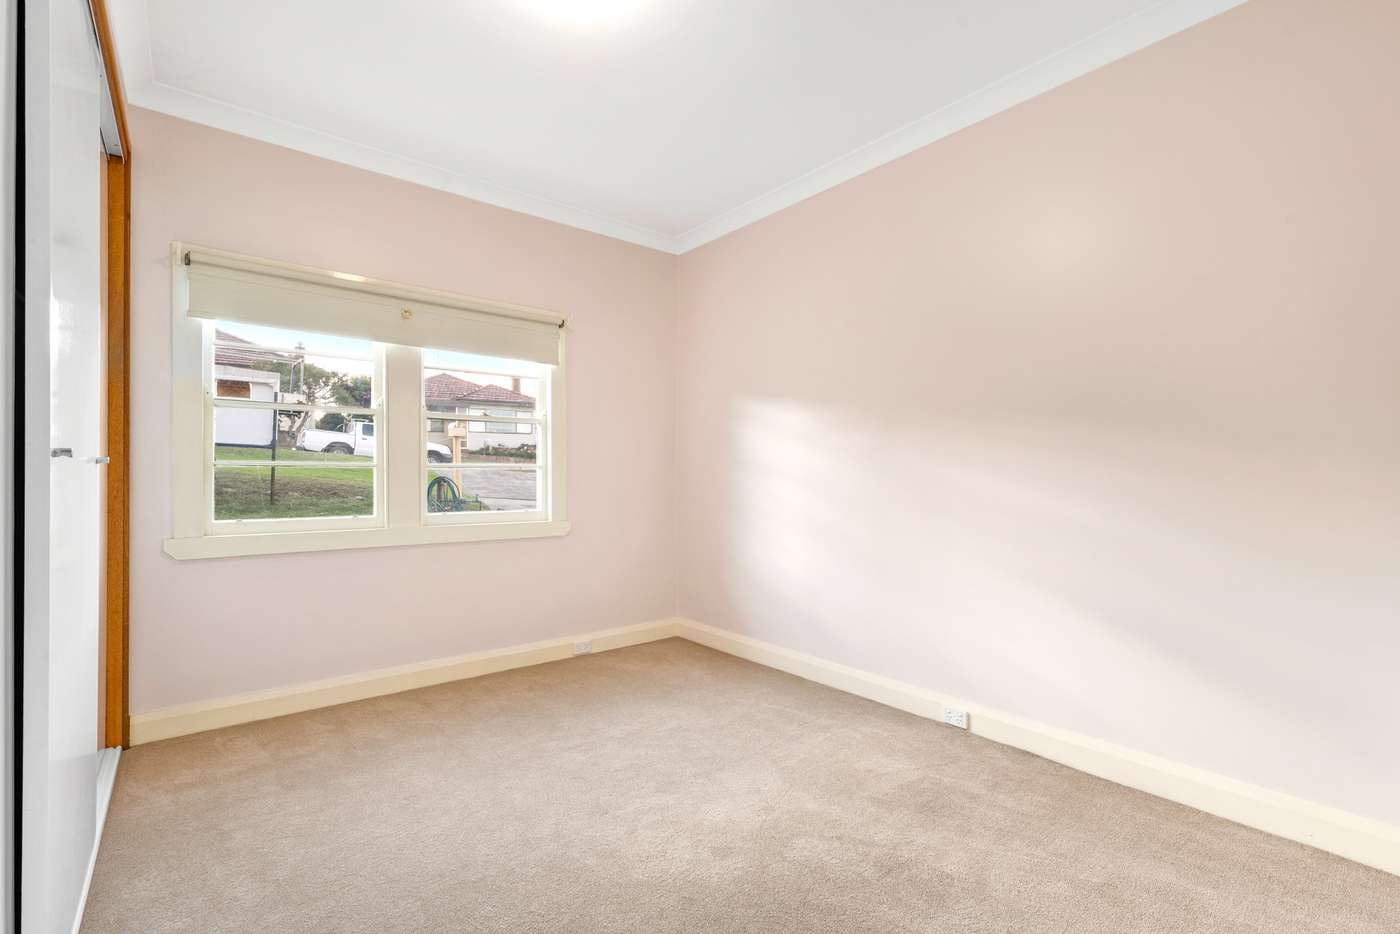 Seventh view of Homely house listing, 25 Grinsell Street, New Lambton NSW 2305